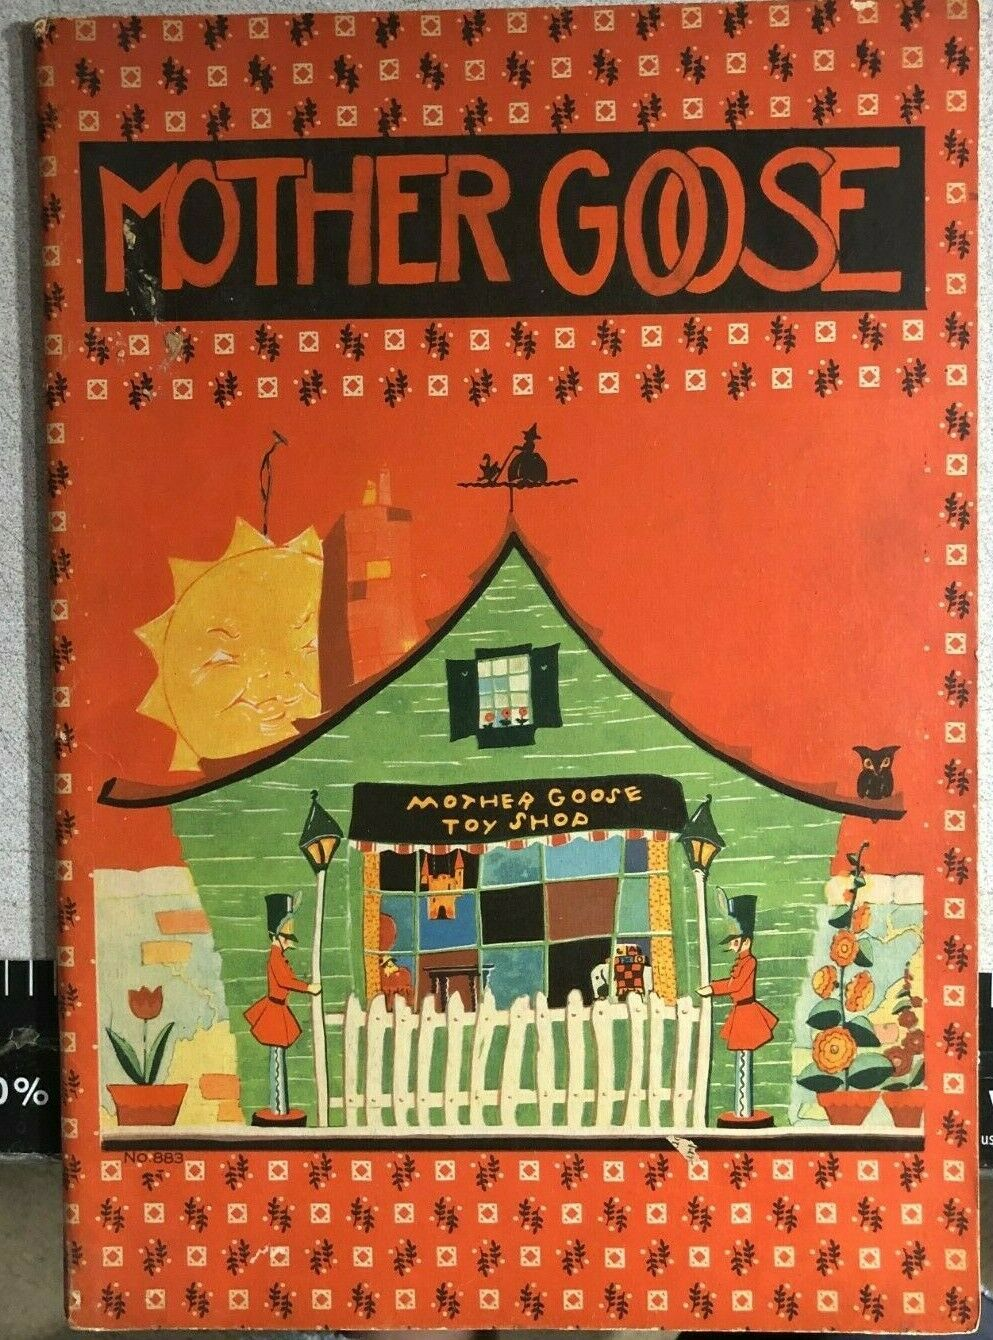 Primary image for MOTHER GOOSE (1932) Saalfield oversize illustrated softcover book